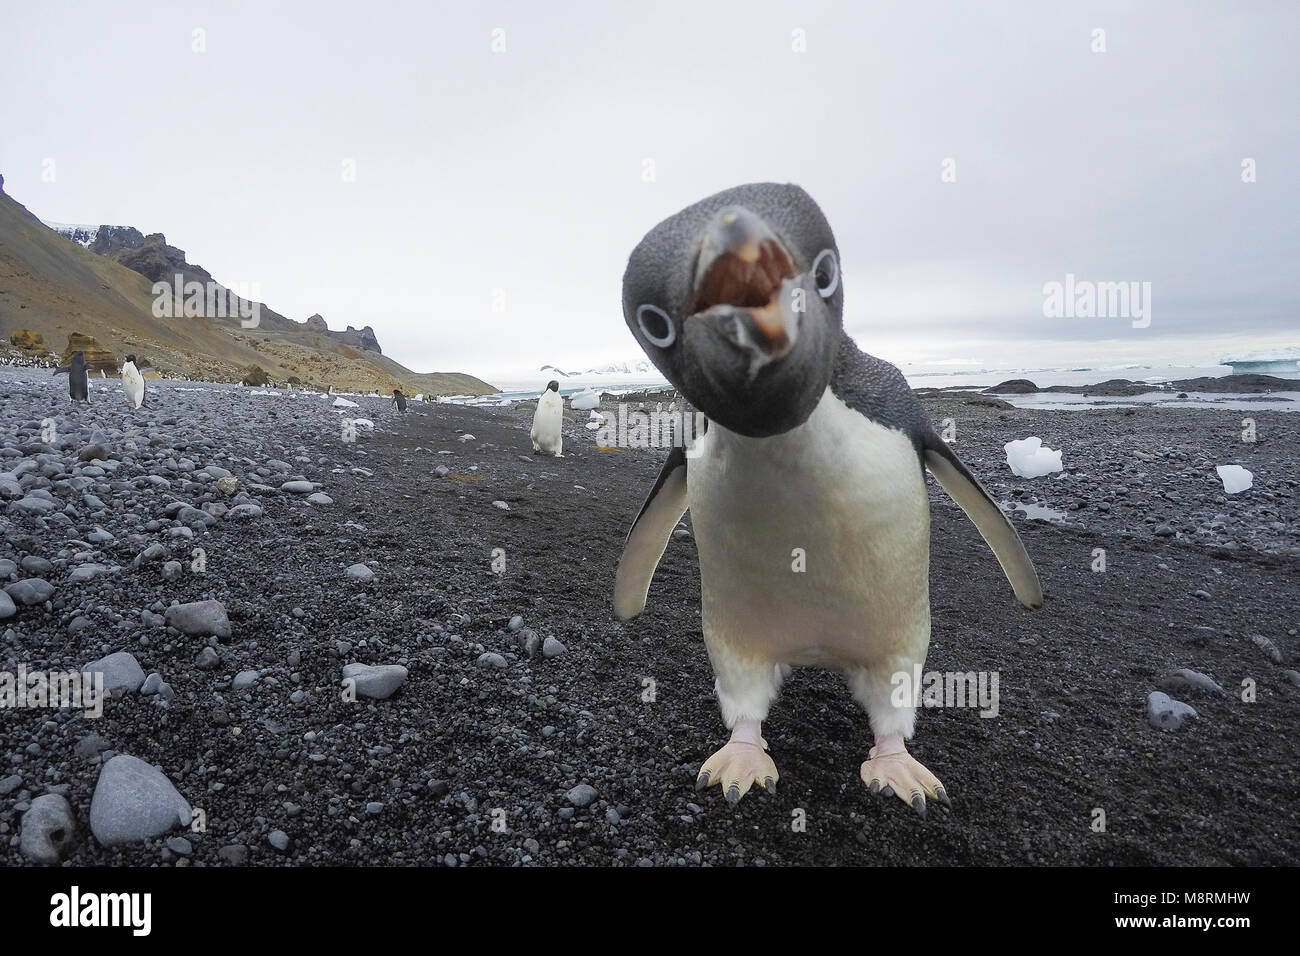 Close up portrait of an Adelie penguin at Brown Bluff, Antarctica. - Stock Image